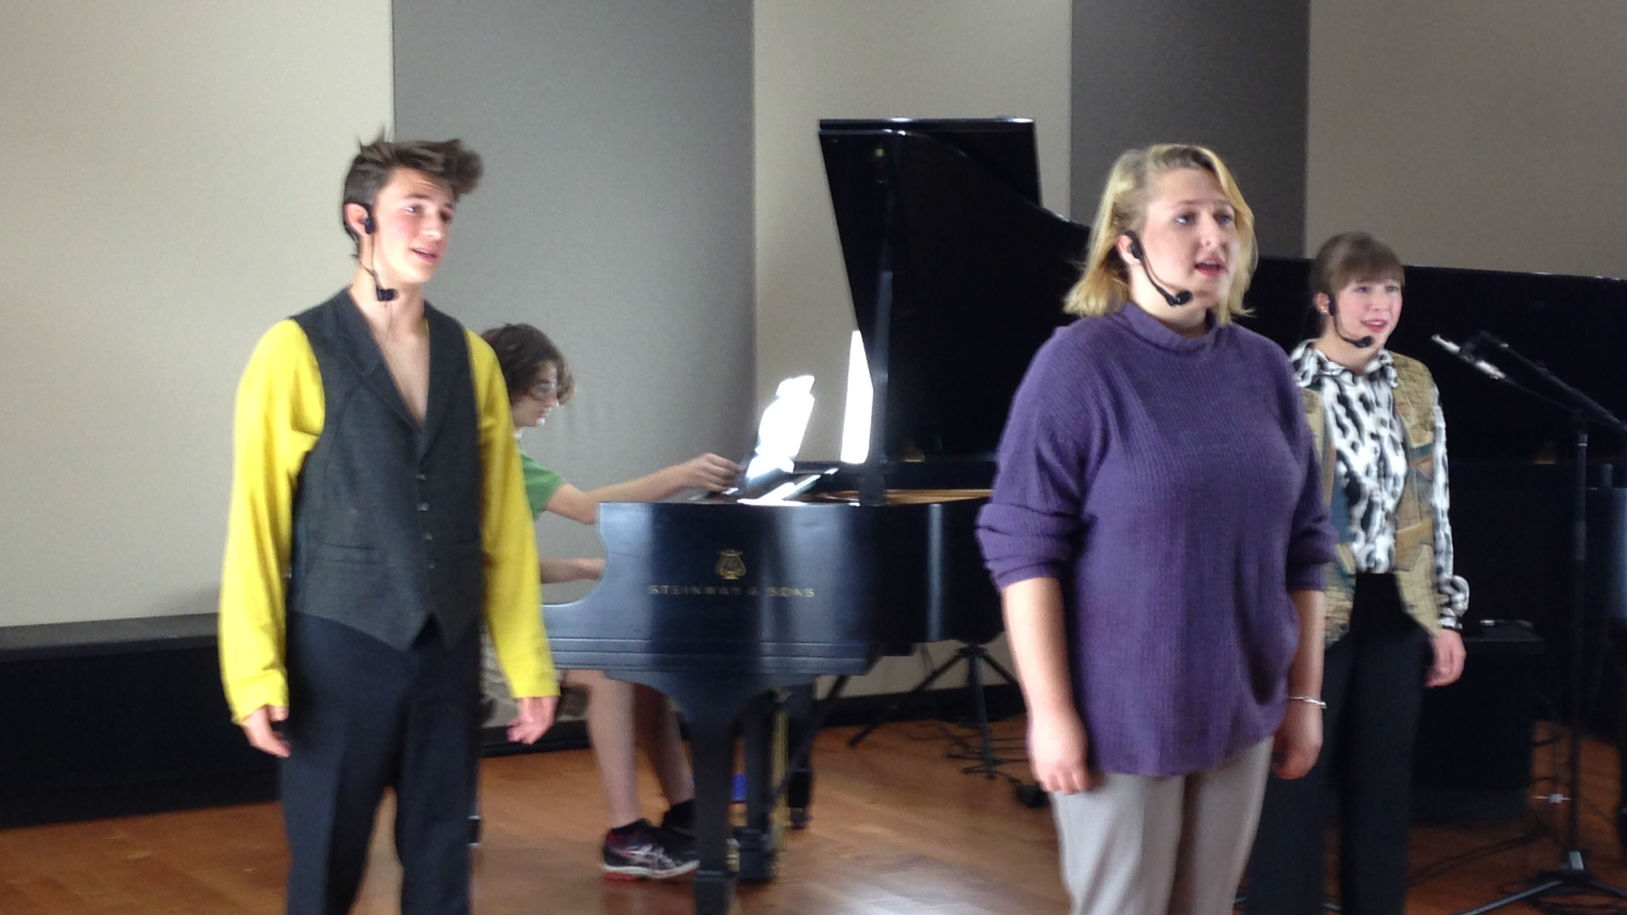 """<p>Left to right: Solomon Abell, Elise Falkenstein and Mikayla Aiken perform the song """"Trio"""" from """"Balloon Boy: The Musical"""" in the CPR Performance Studio. The show's music director,Oliver Ullman, is on the piano.</p>"""